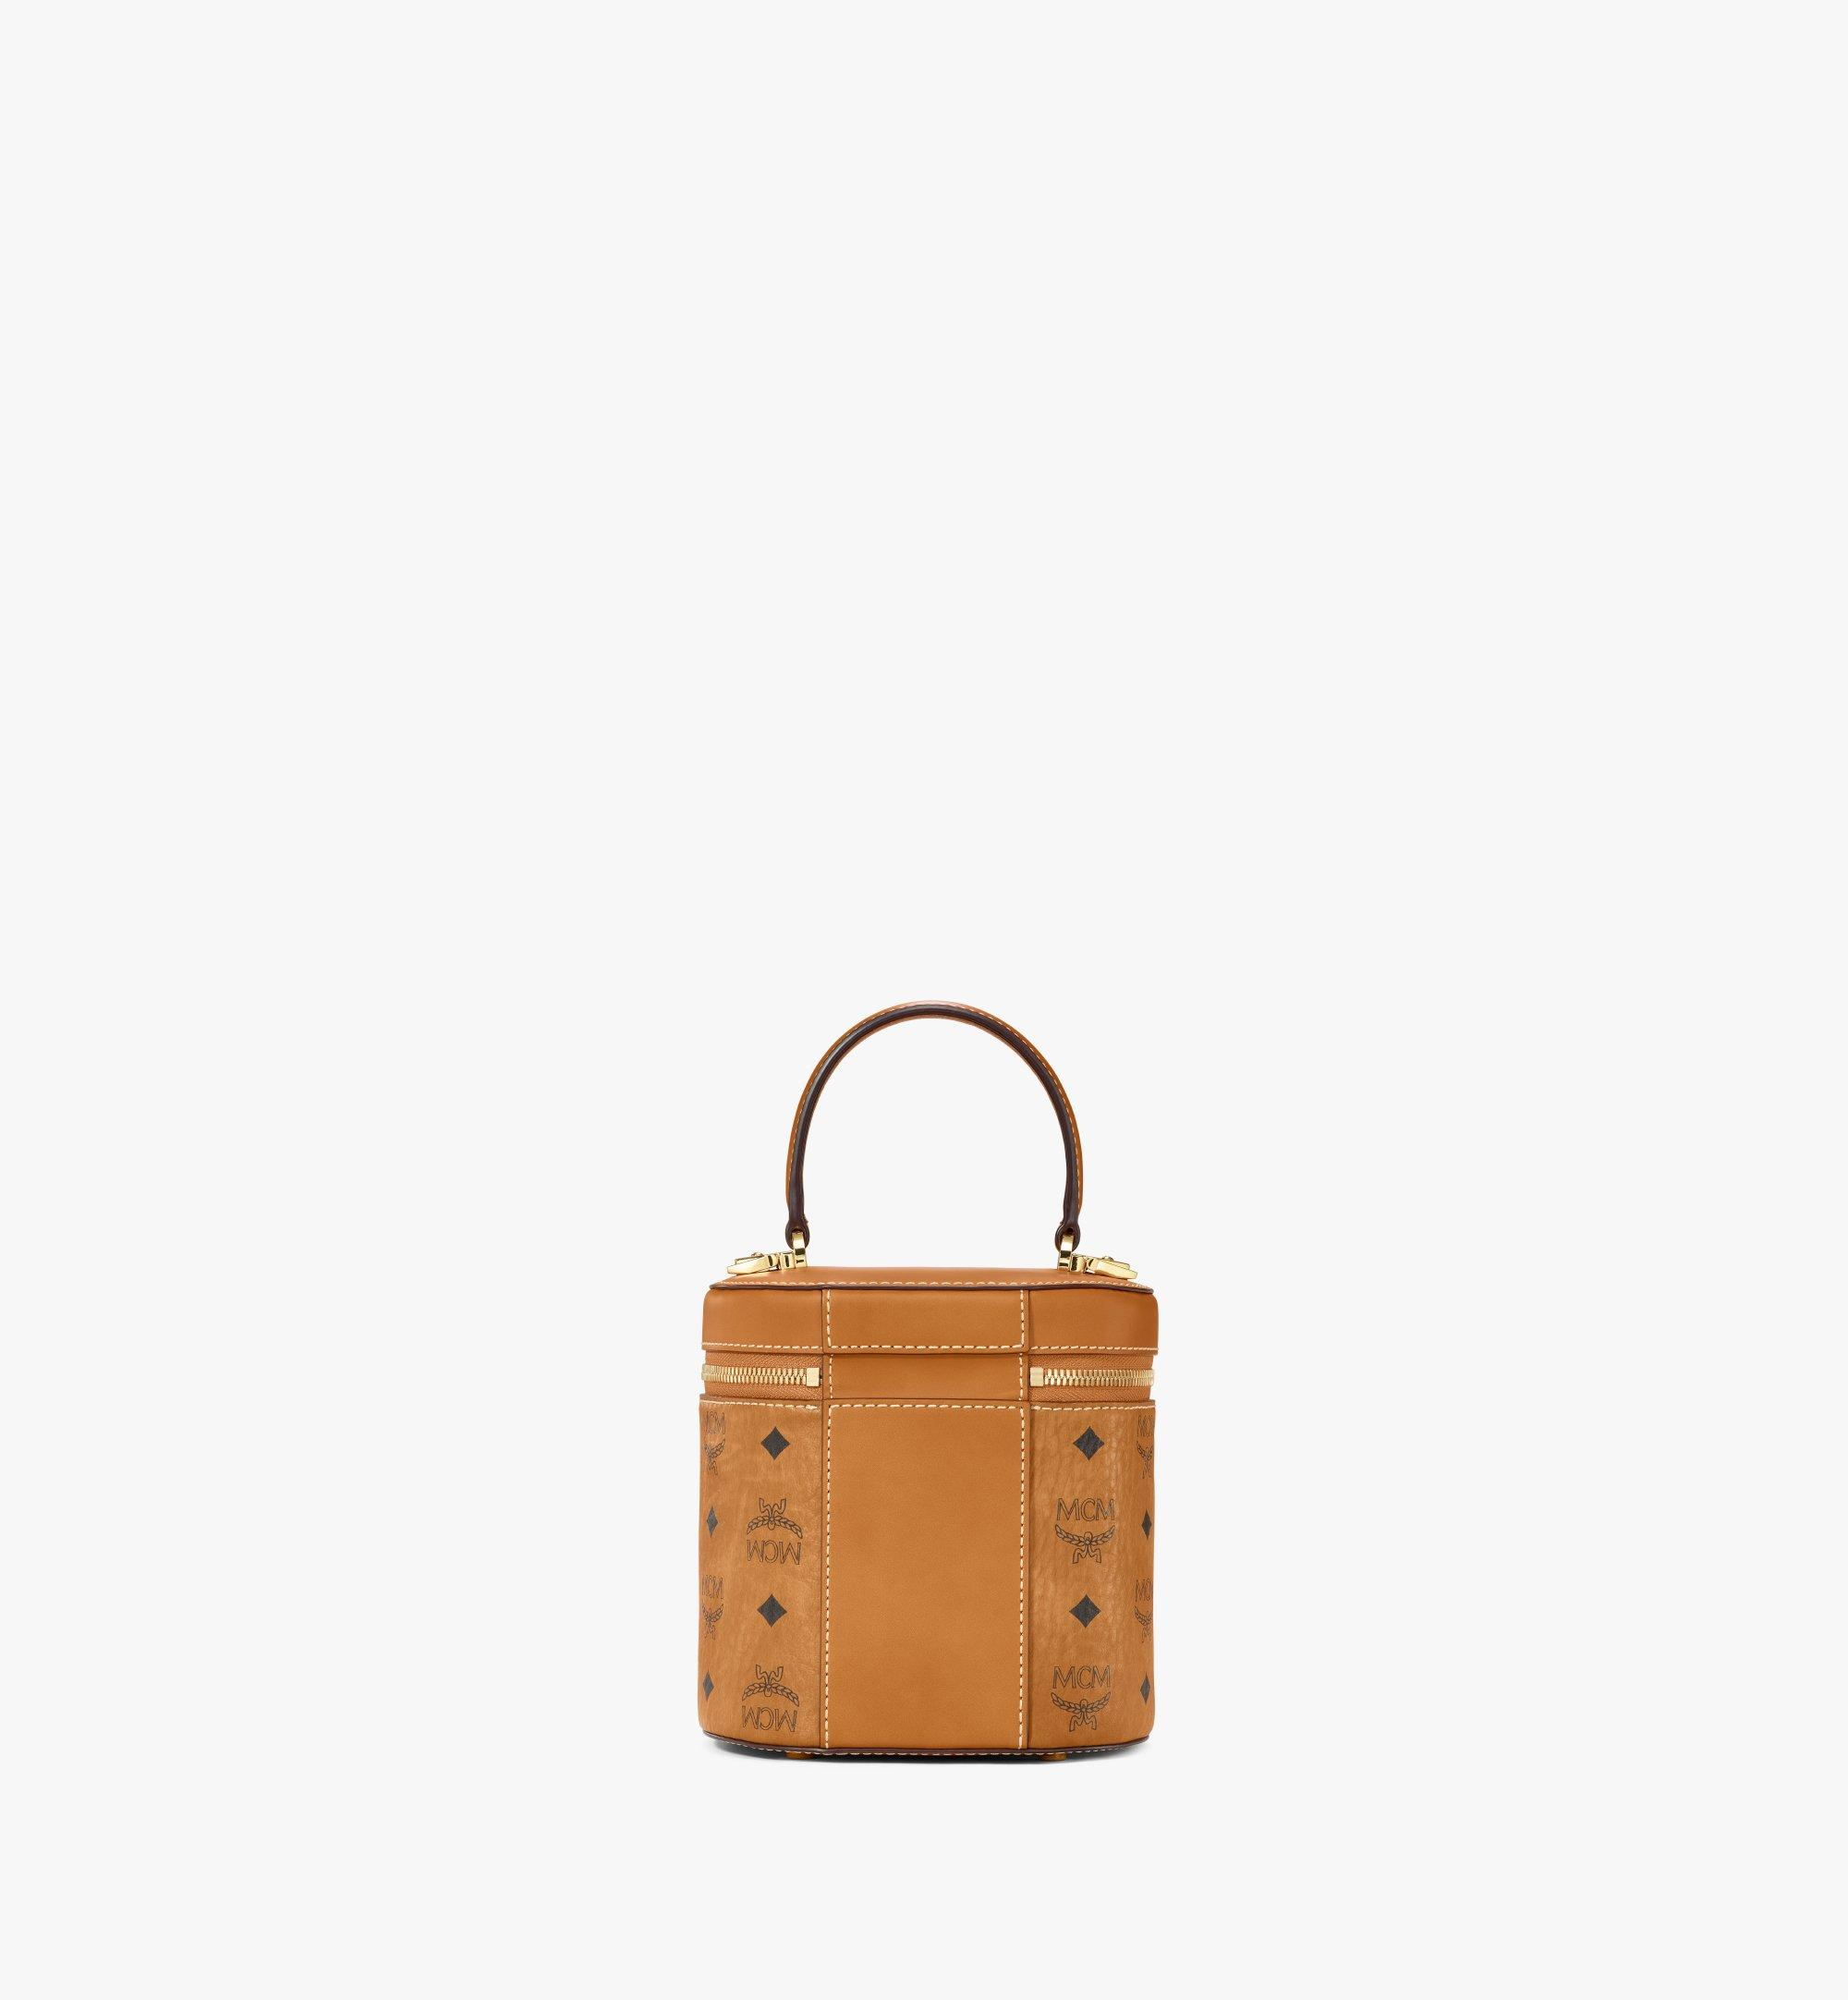 MCM Sac à bandoulière cylindrique en Visetos Cognac MWRAACG01CO001 Plus de photos 3